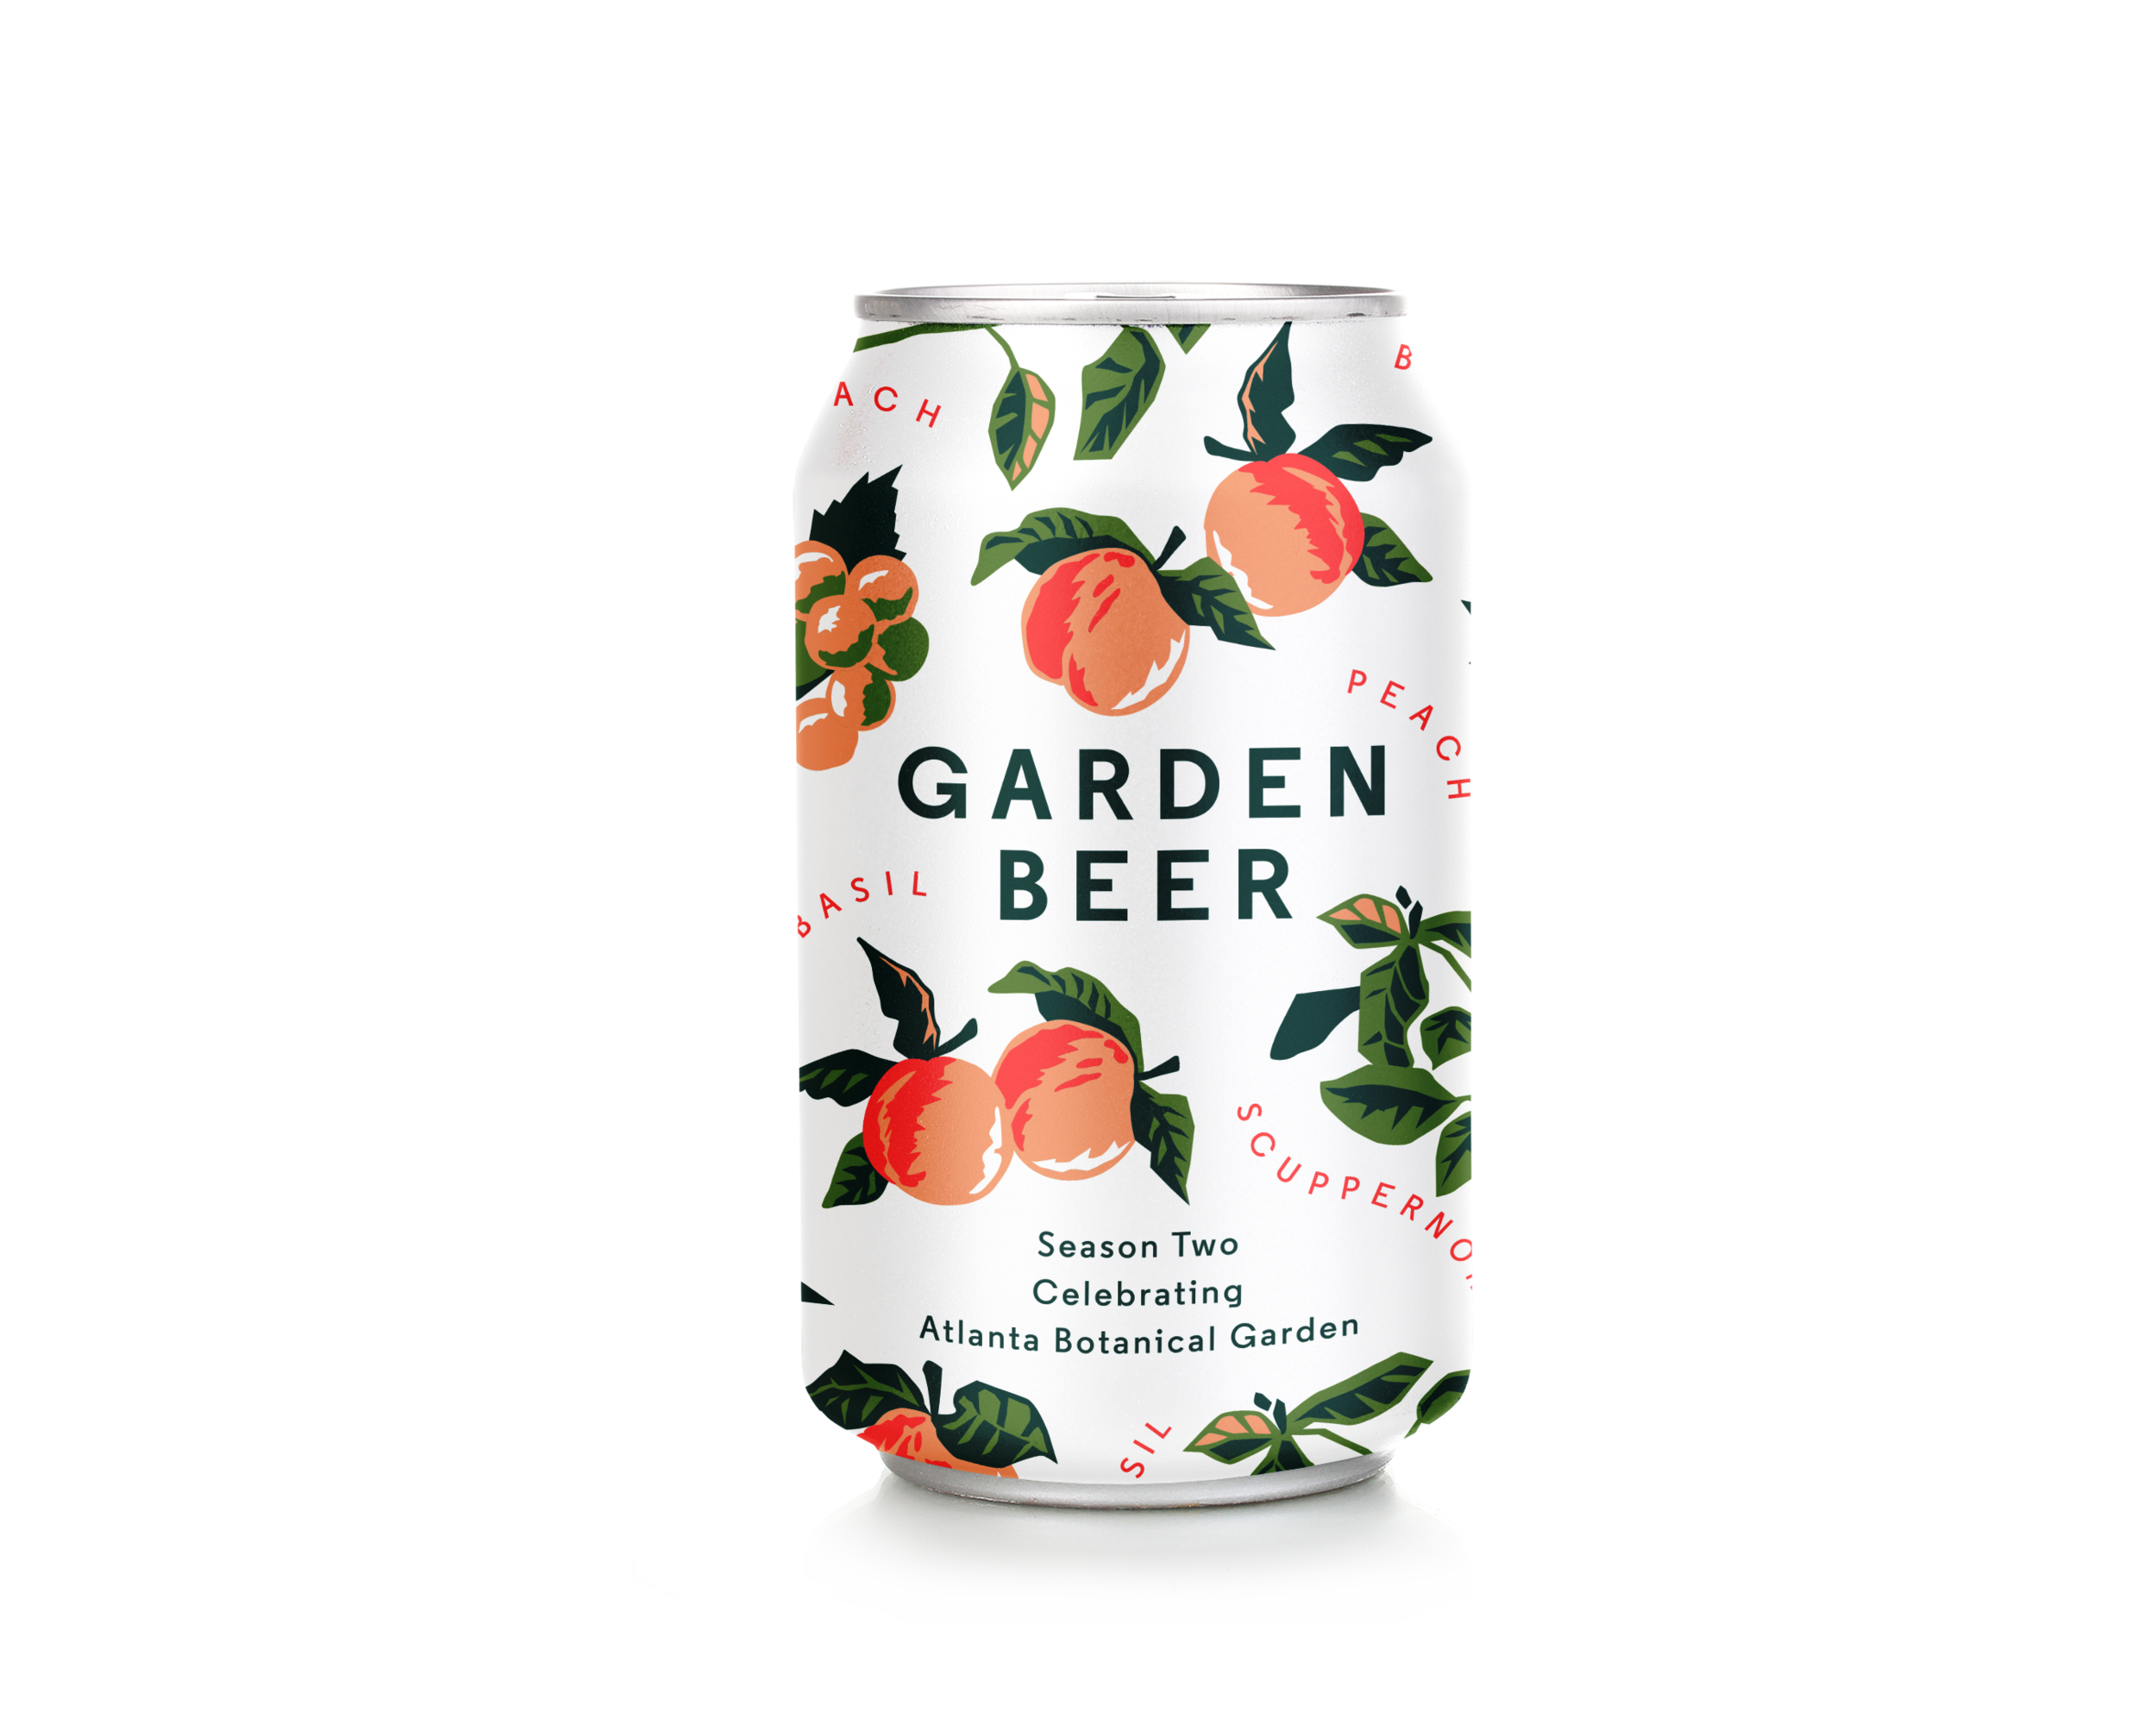 Garden Beer - Golden Ale6% ABVOur second collaboration with the Atlanta Botanical Garden features peaches, scuppernongs and basil. This delicious and lively beer drinks like a classic fall beer.